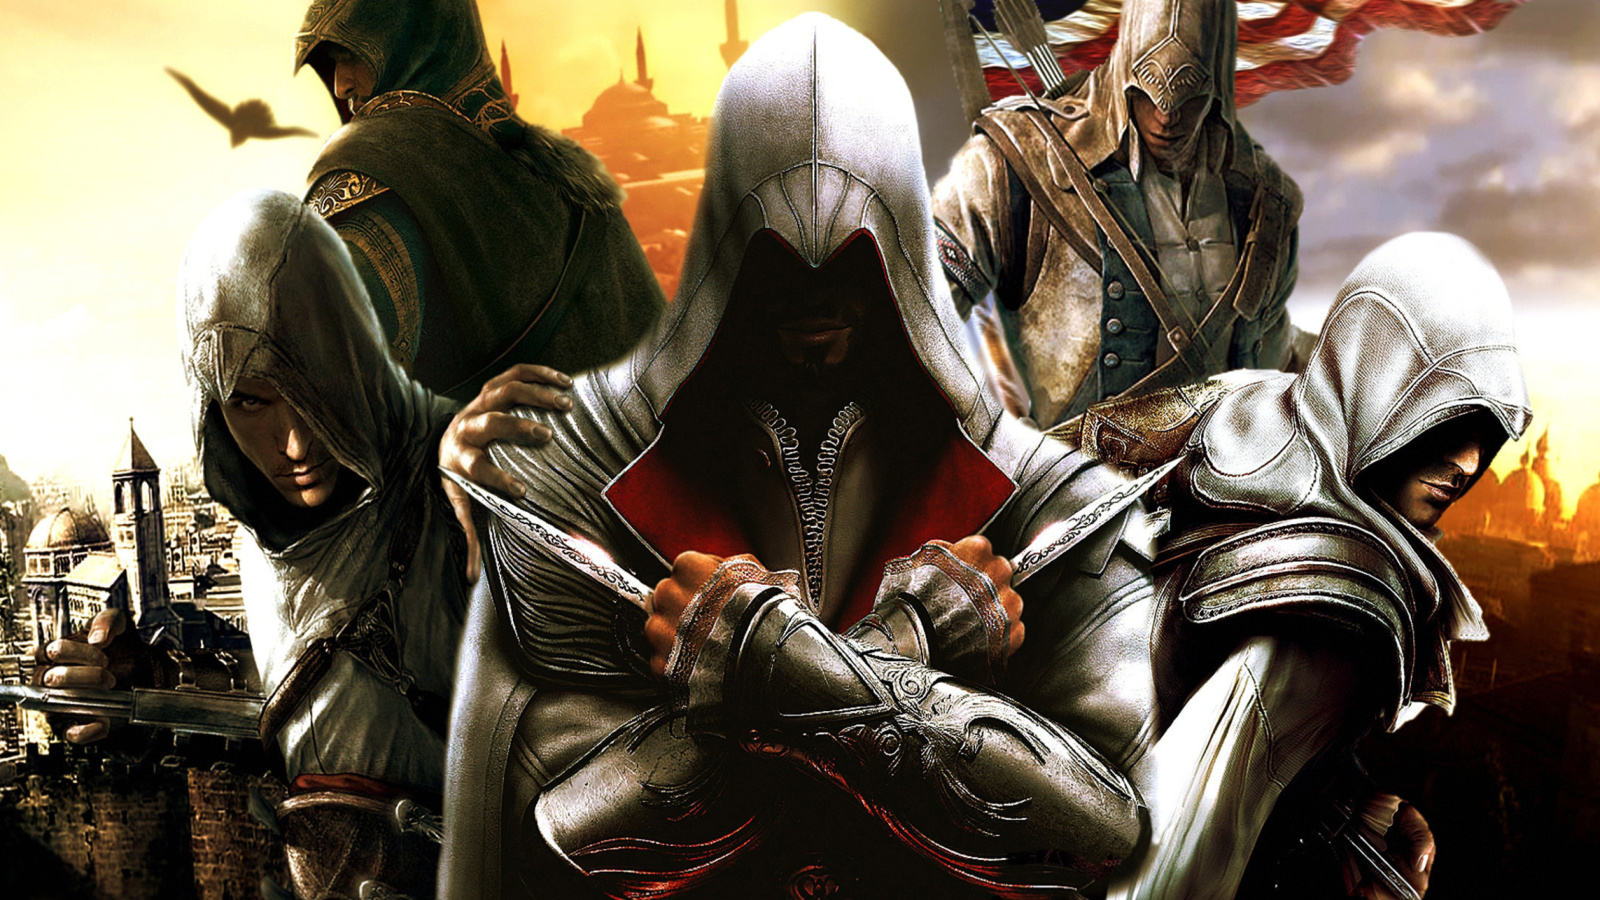 Assassins Creed Altair Ezio Connor screenshot #1 1600x900